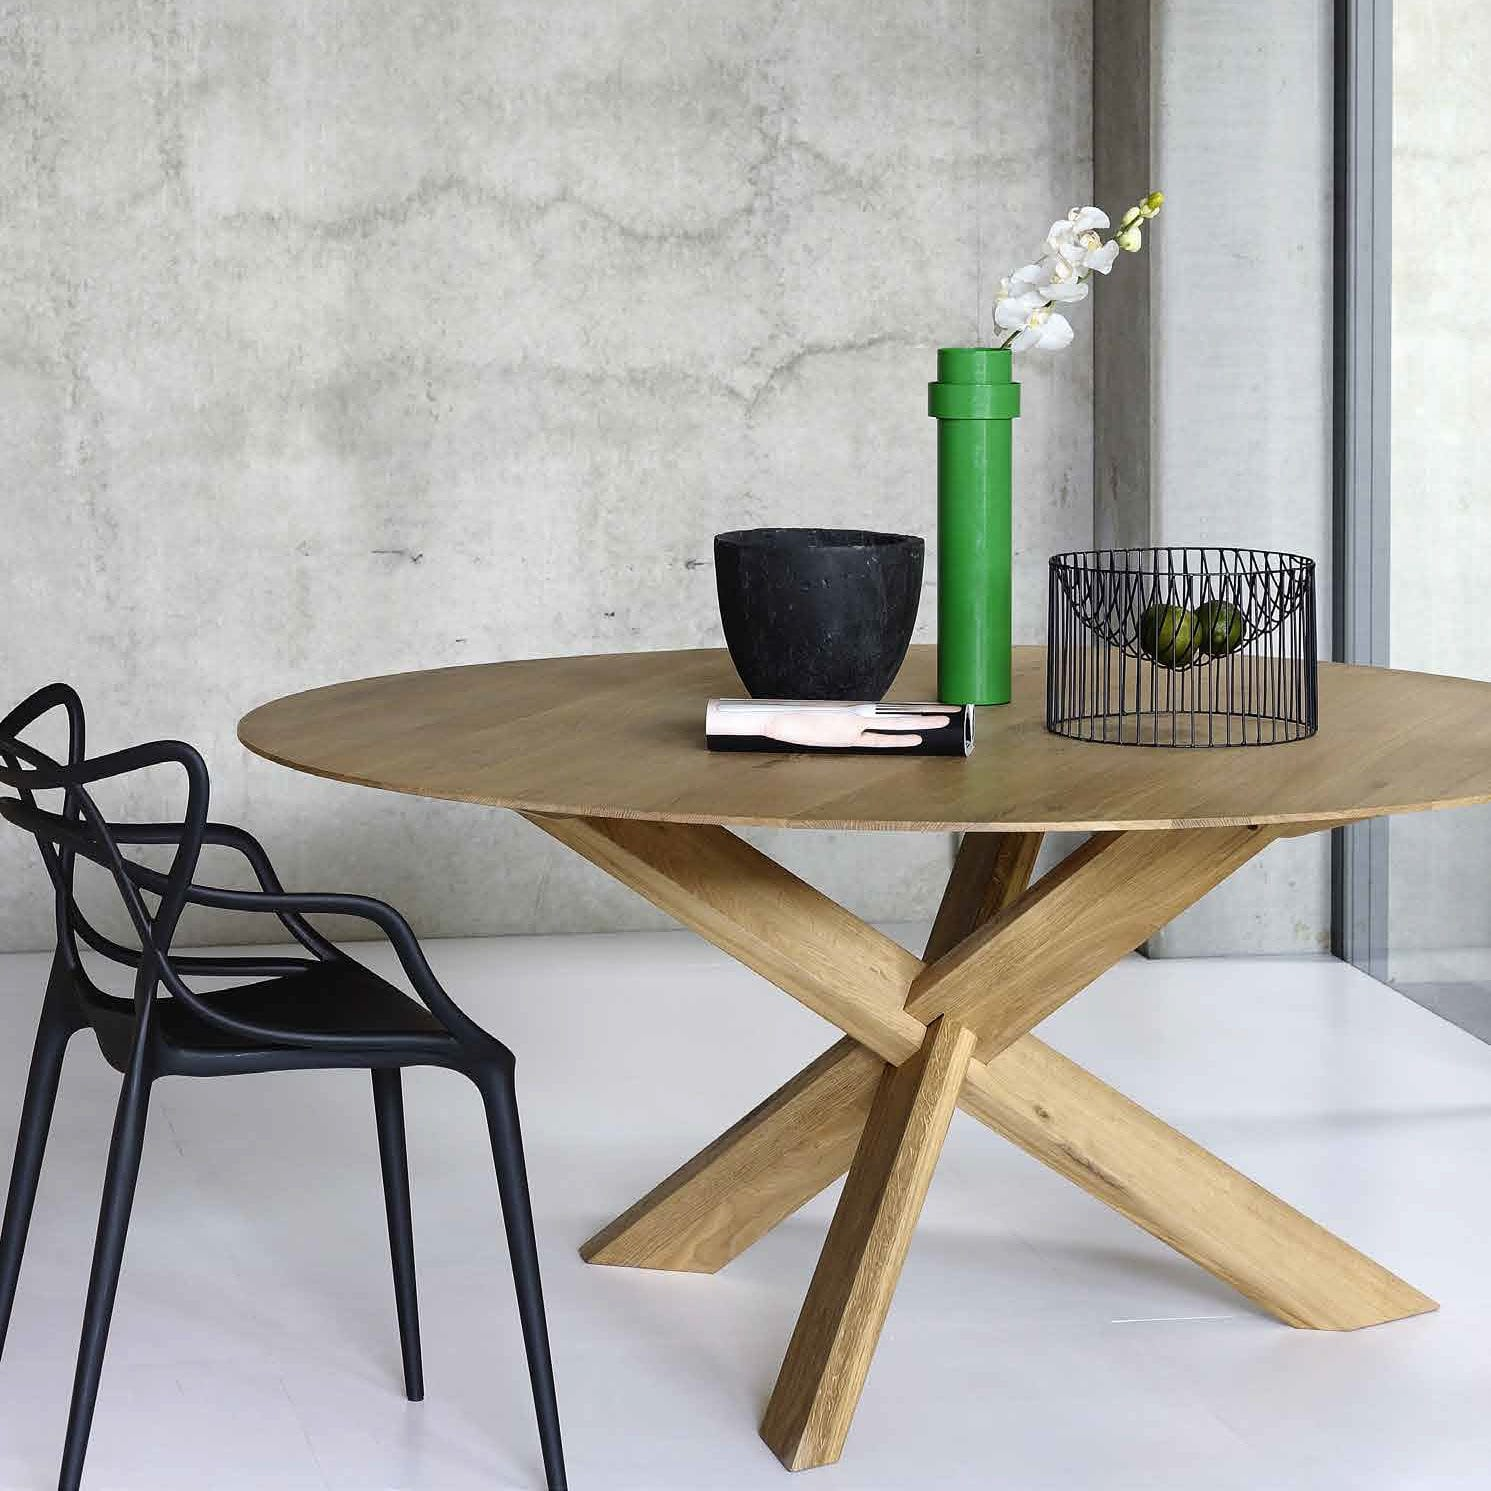 contemporary dining table oak round 50164 by alain van havre - Oak Round Dining Table